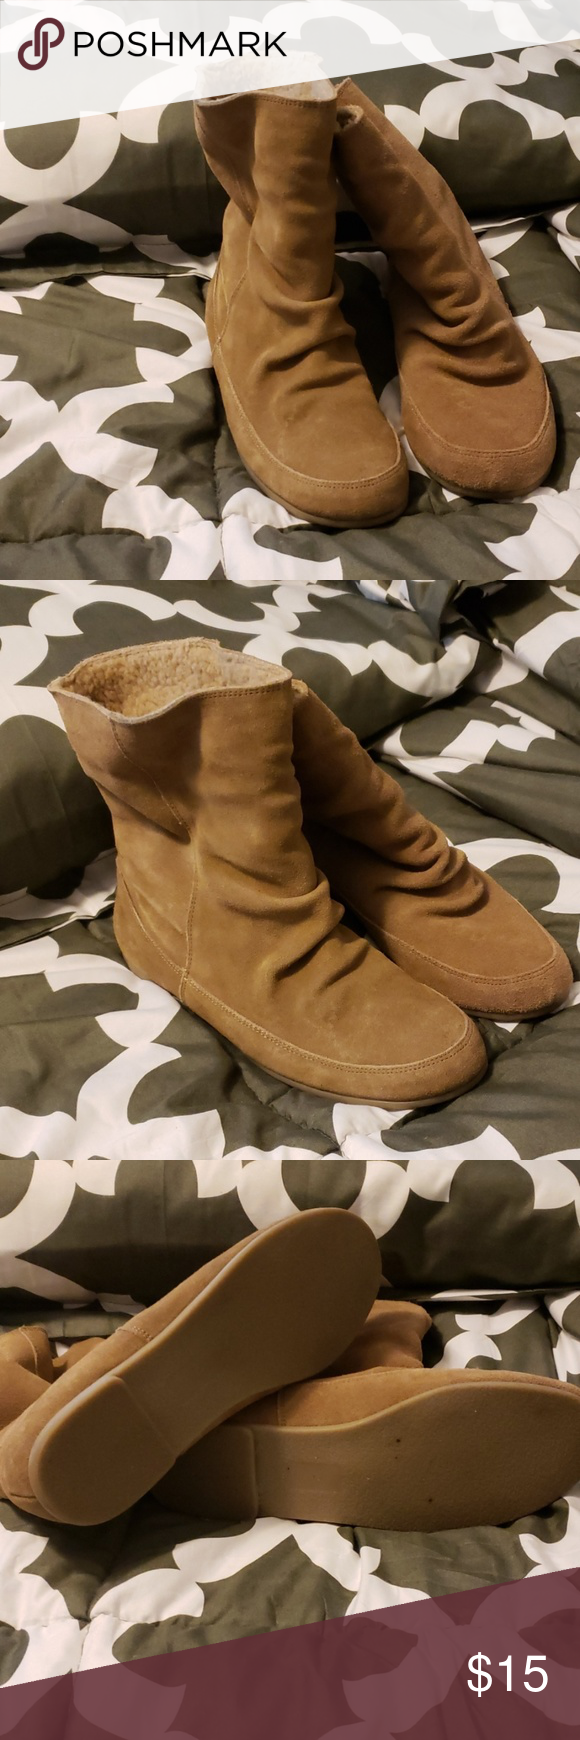 Suede ankle booties Like new ankle booties. I wore them a couple of times. Very cute with skinny jeans and comfortable. Nine West Shoes Ankle Boots & Booties #skinnyjeansandankleboots